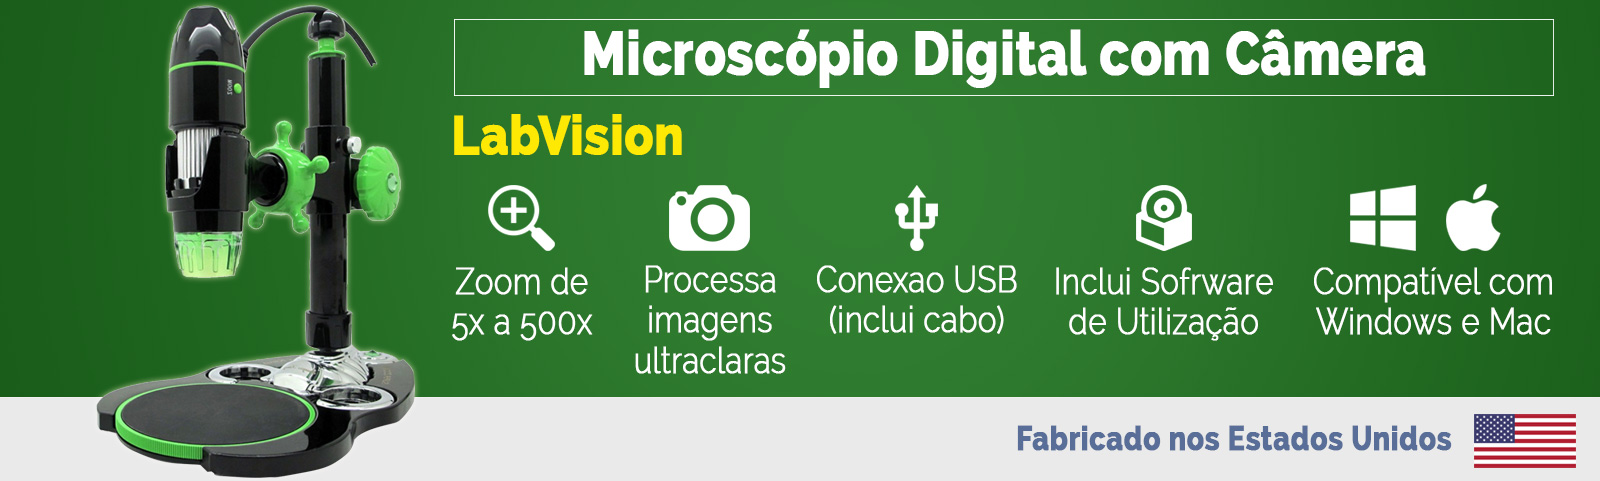 Microscópio Portatil Digital USB